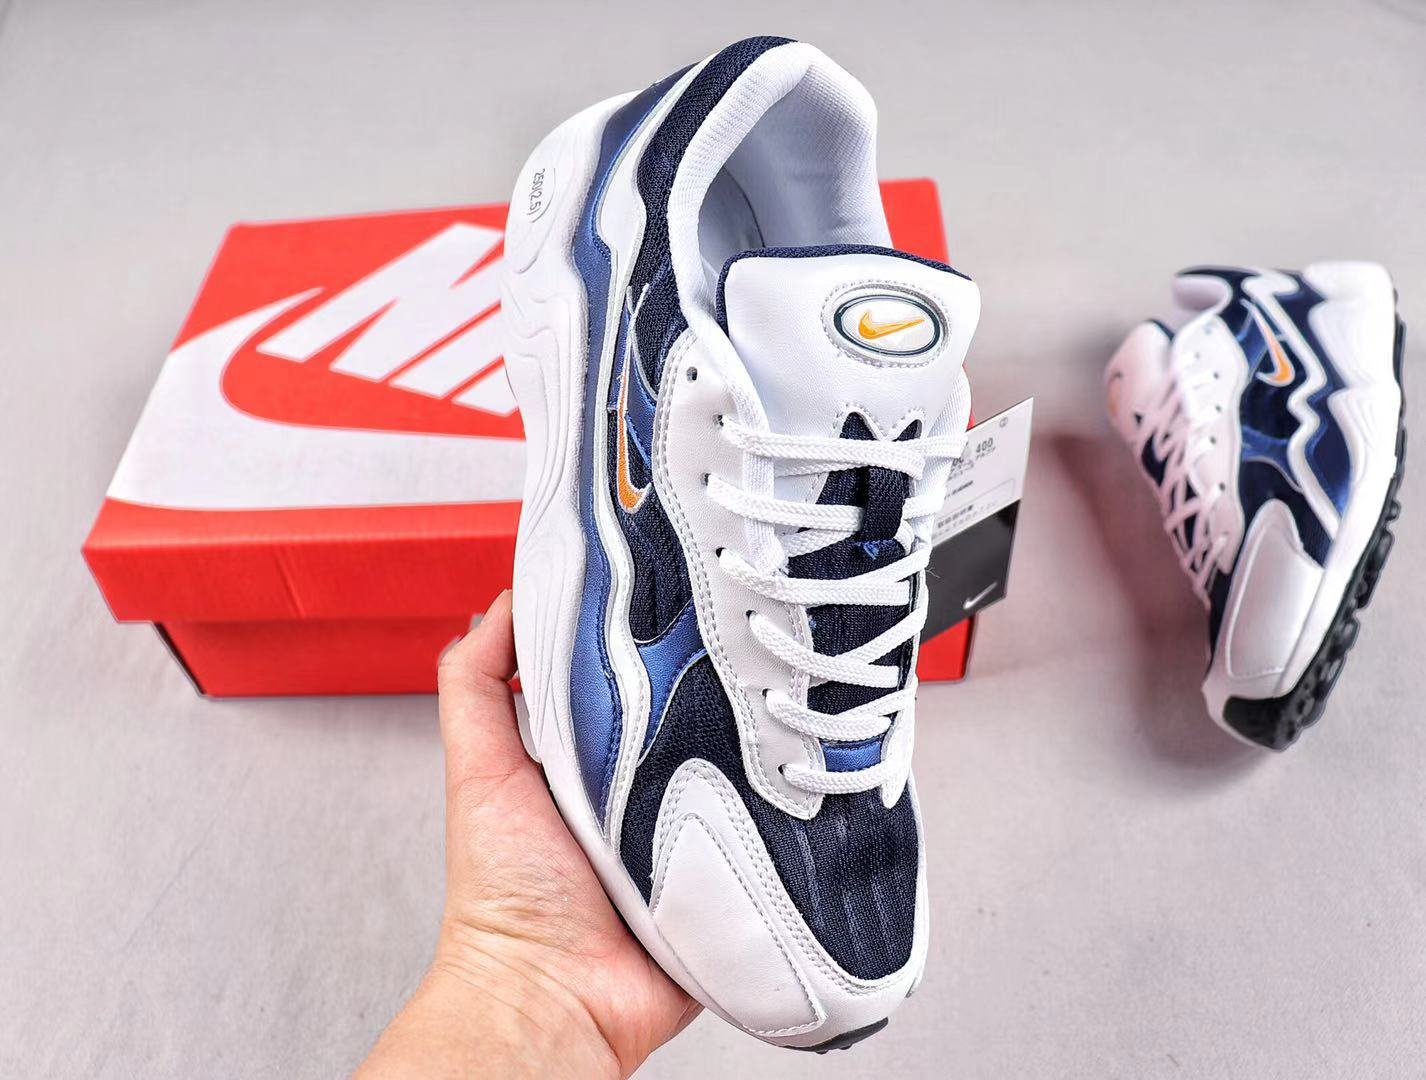 Nike Zoom Alpha BQ8800-400 Dark Navy/White-Orange Sneakers Online Sale